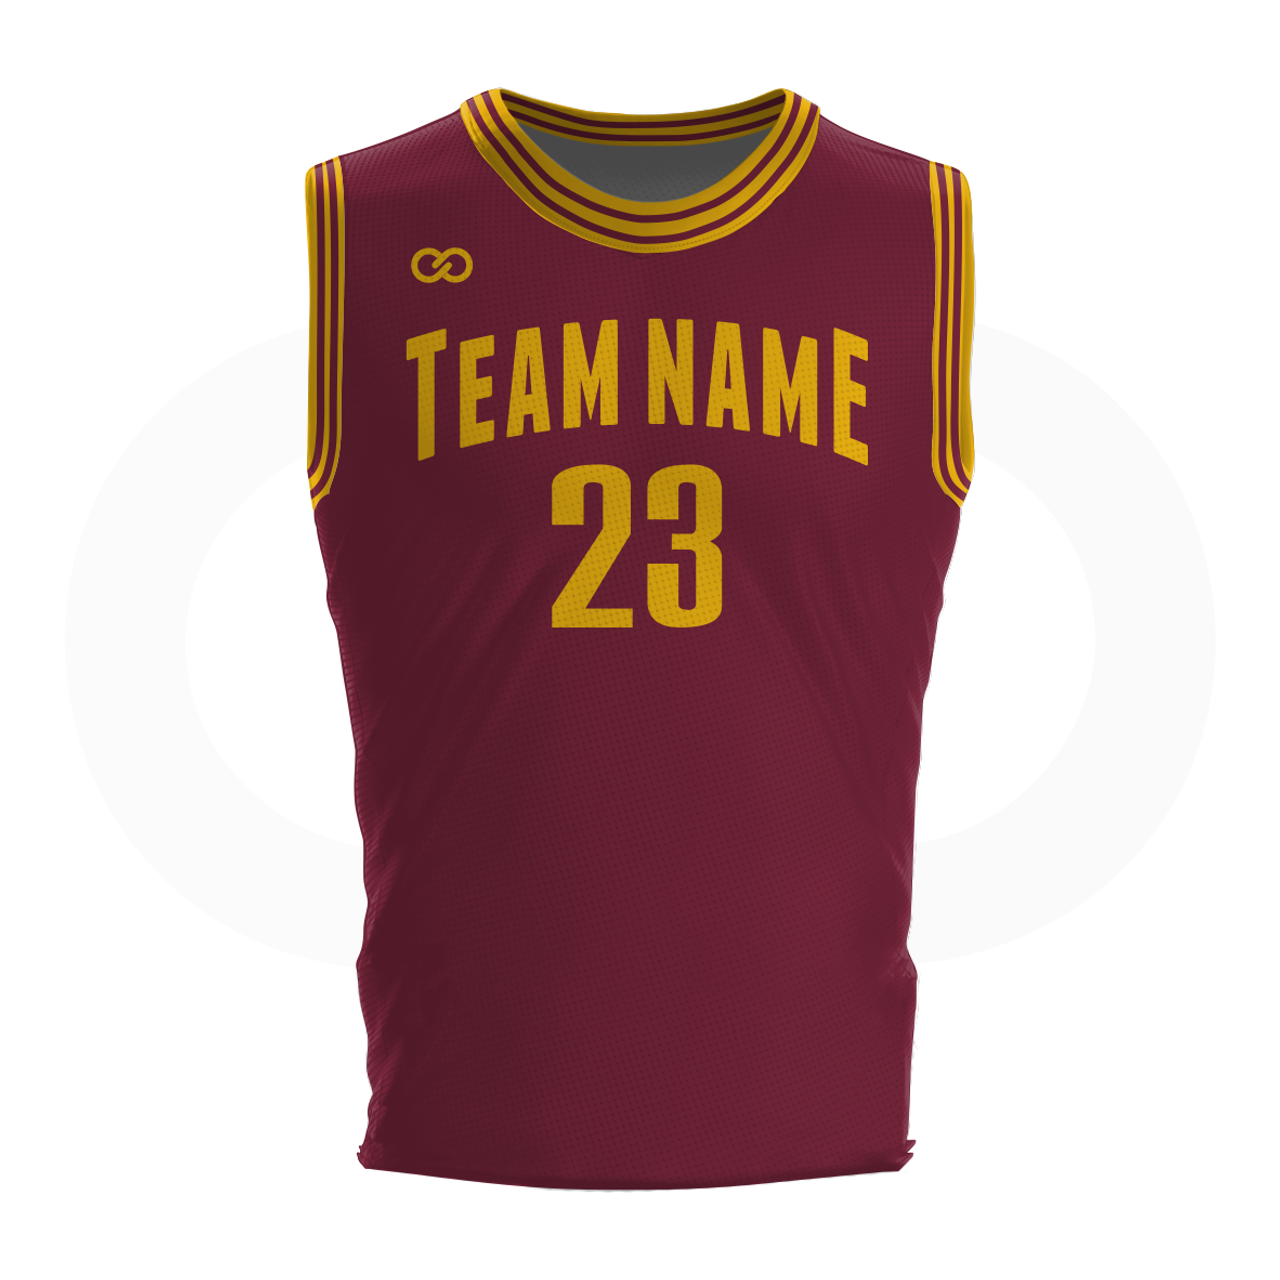 1c2c552b4e7 Cavs - Custom Basketball Jersey - Wooter Apparel